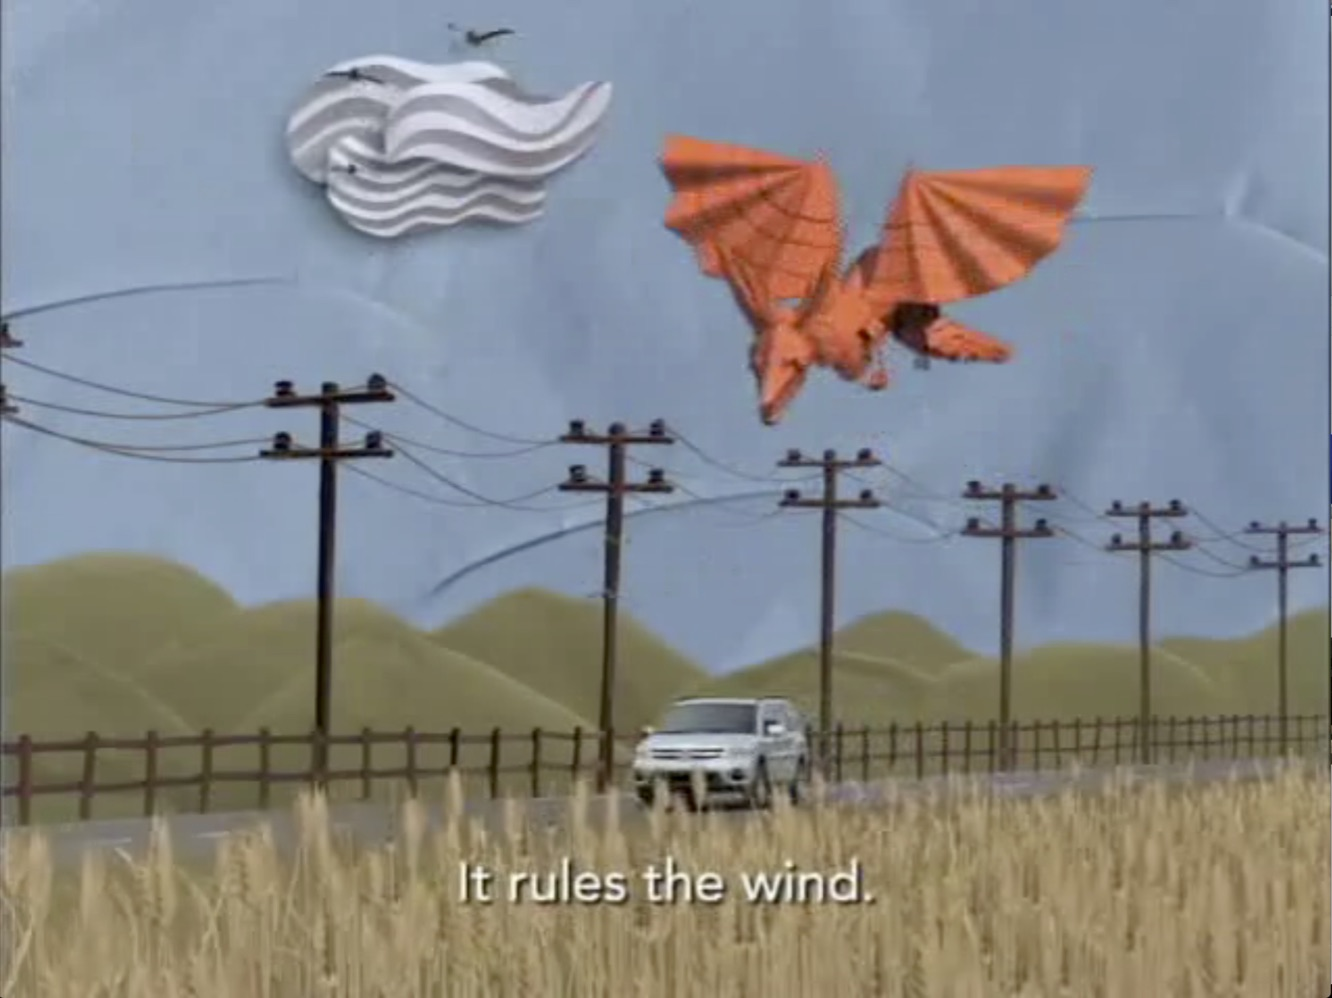 rules the wind